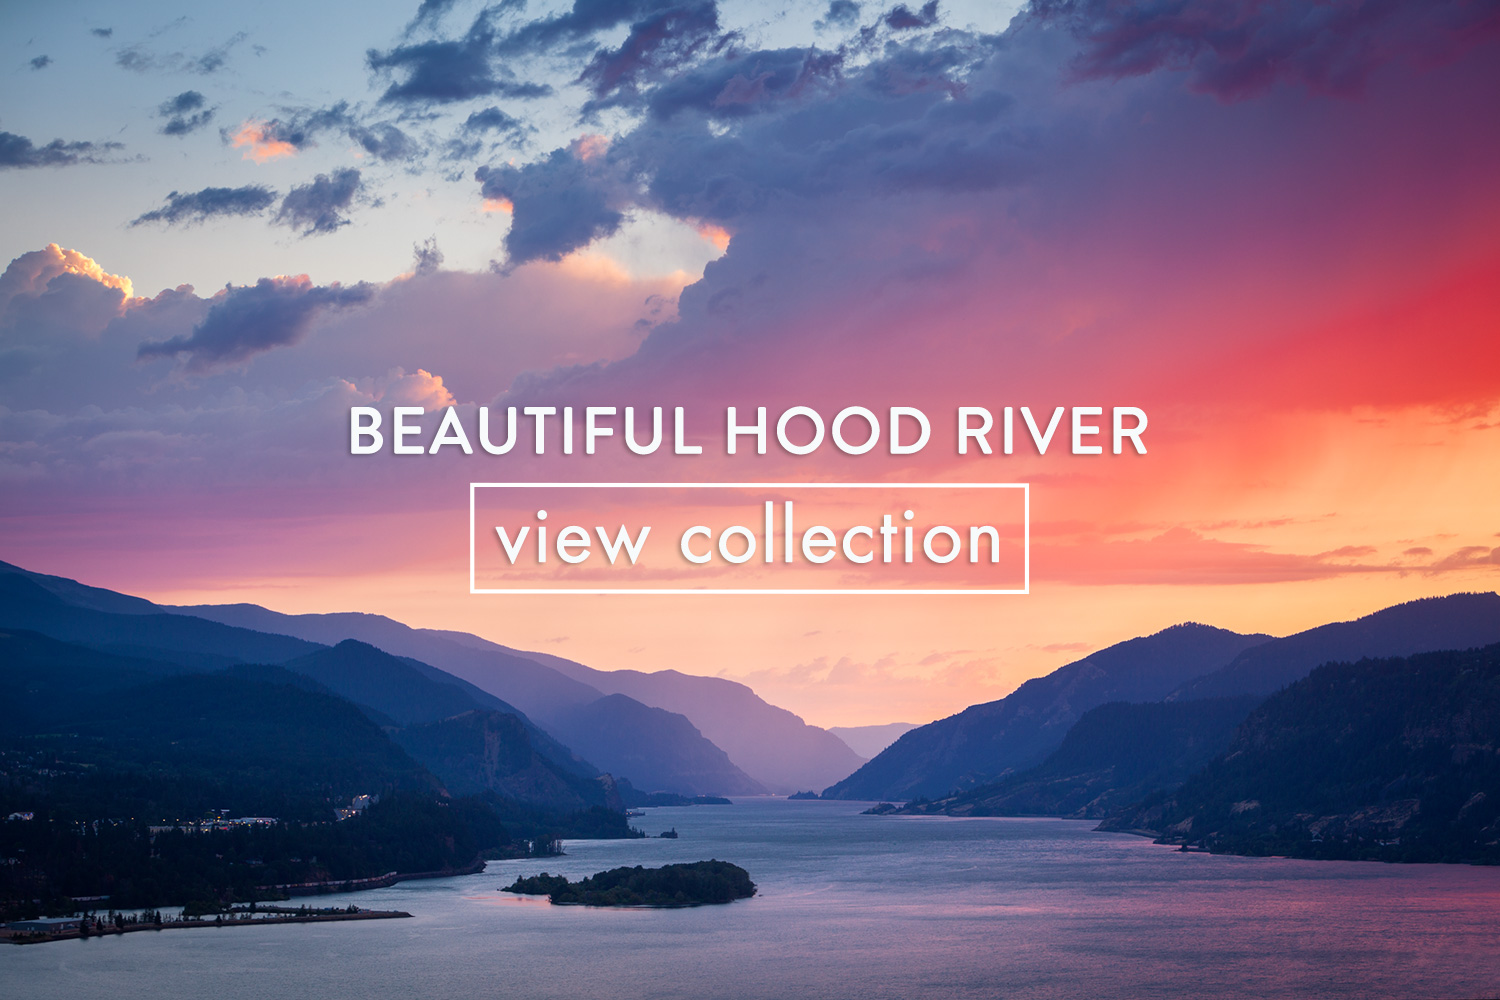 beautiful-hood-river-button.jpg